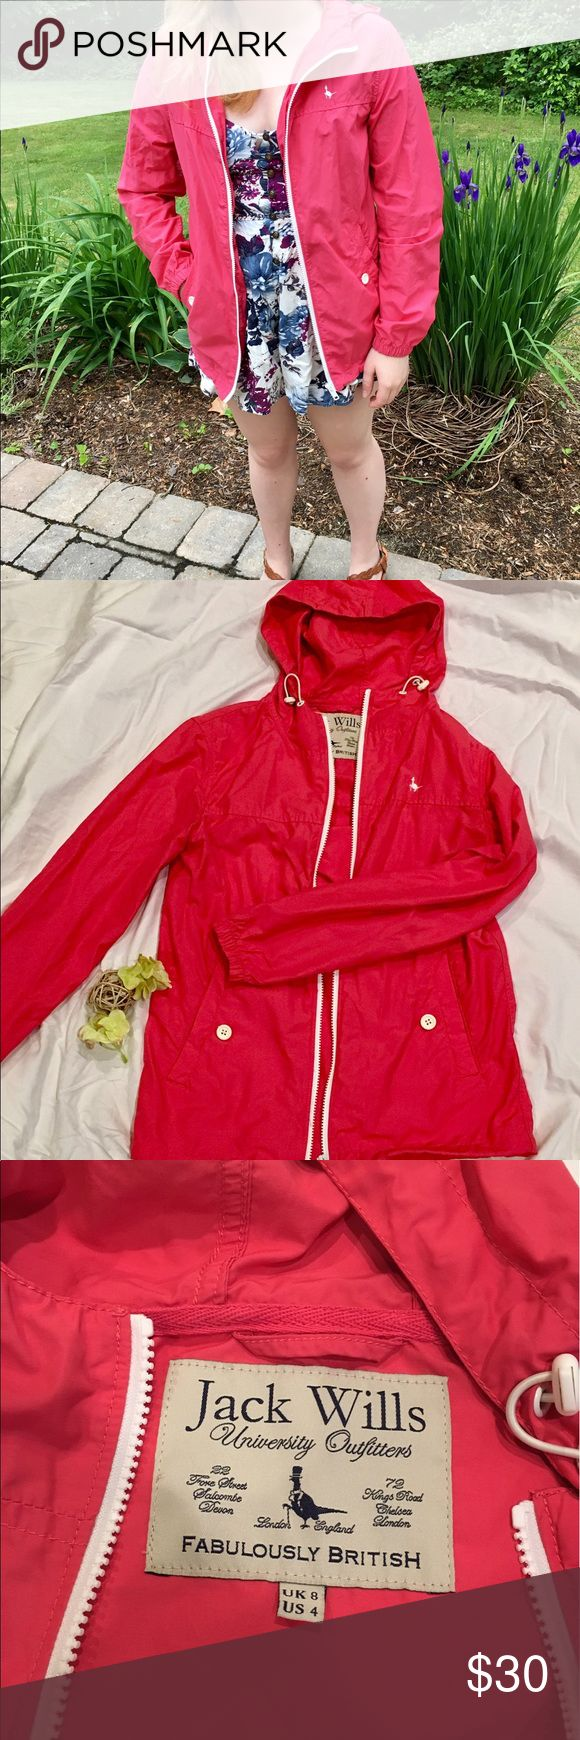 Pink Jack Wills Rain Jacket Cute rain jacket with white details that elevate it from just functional to fashionable as well. Jack Wills is a British company that sells high quality items. Only worn a few times and in perfect condition. Jack Wills Jackets & Coats